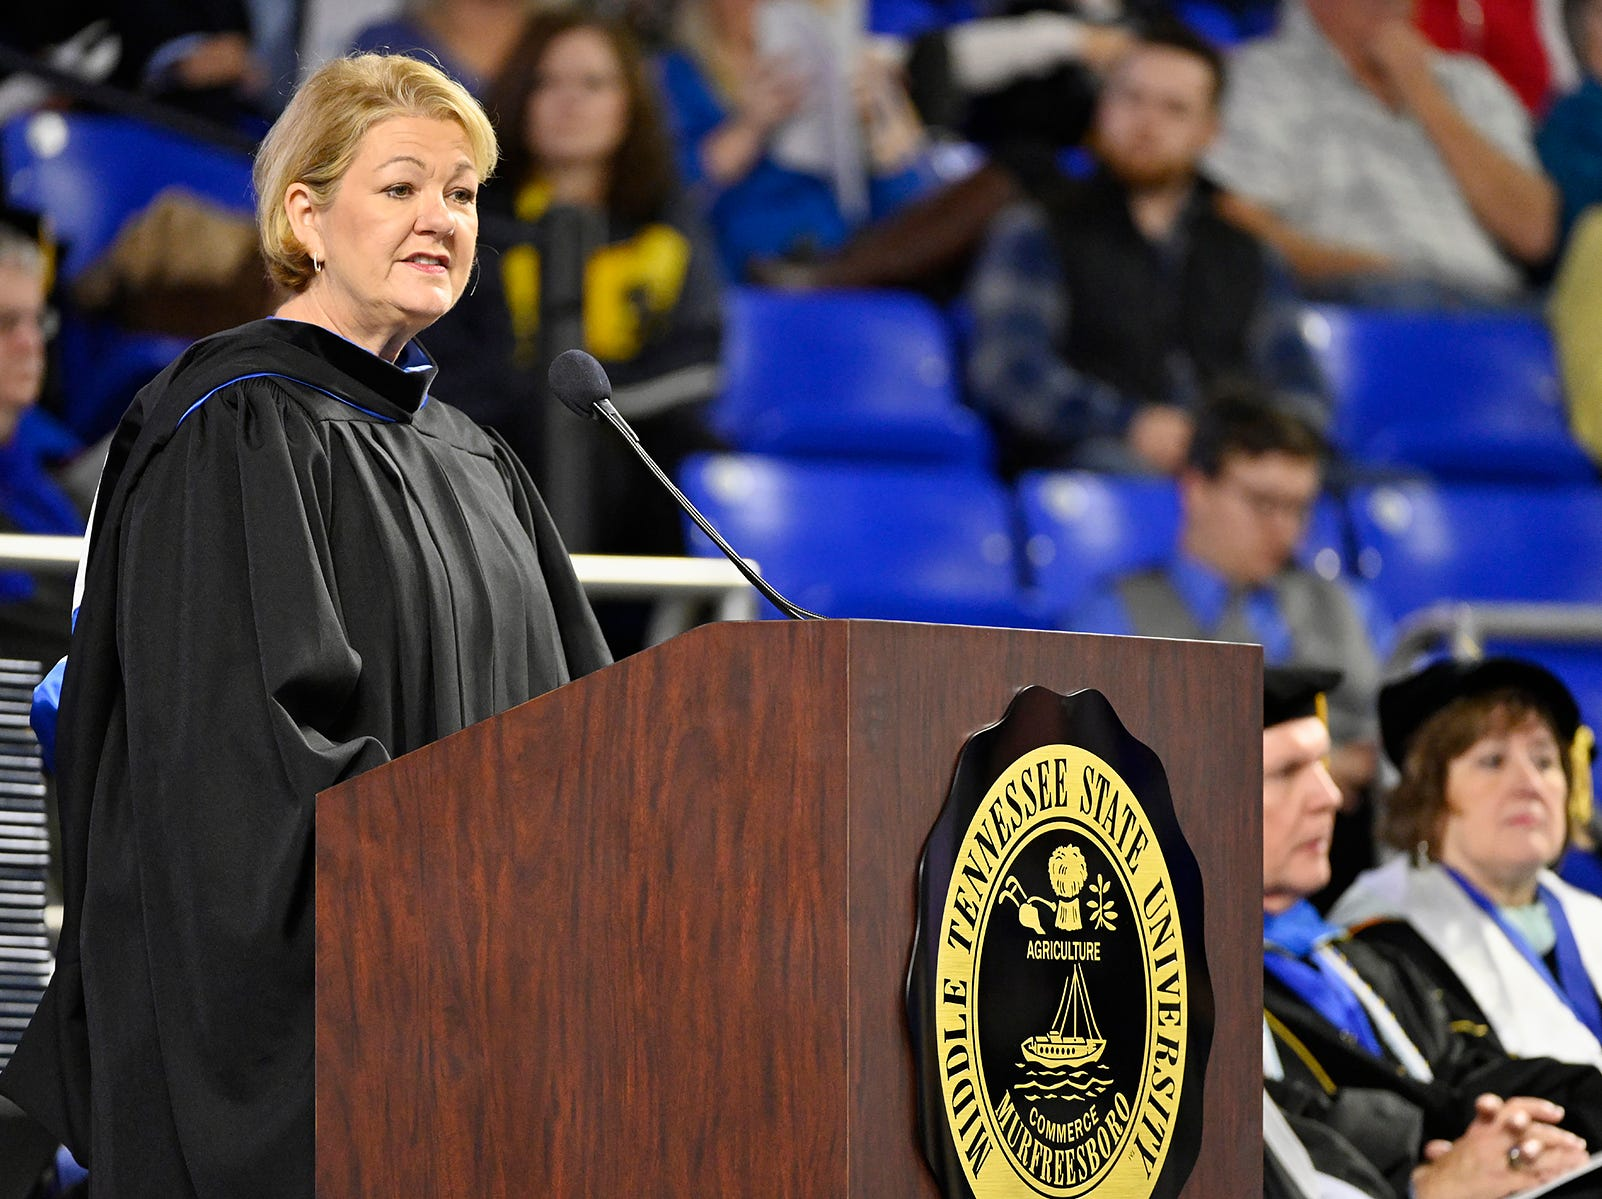 Wanda Lyle, managing director of UBS AG and general manager of the UBS Business Solutions Center in Nashville, makes a point Saturday, Dec. 15, during her address to graduating students at MTSU's fall 2018 morning commencement ceremony in Murphy Center. MTSU presented 1,731 degrees to students in dual ceremonies, including 1,471 undergraduates and 260 graduate students in the celebrations.